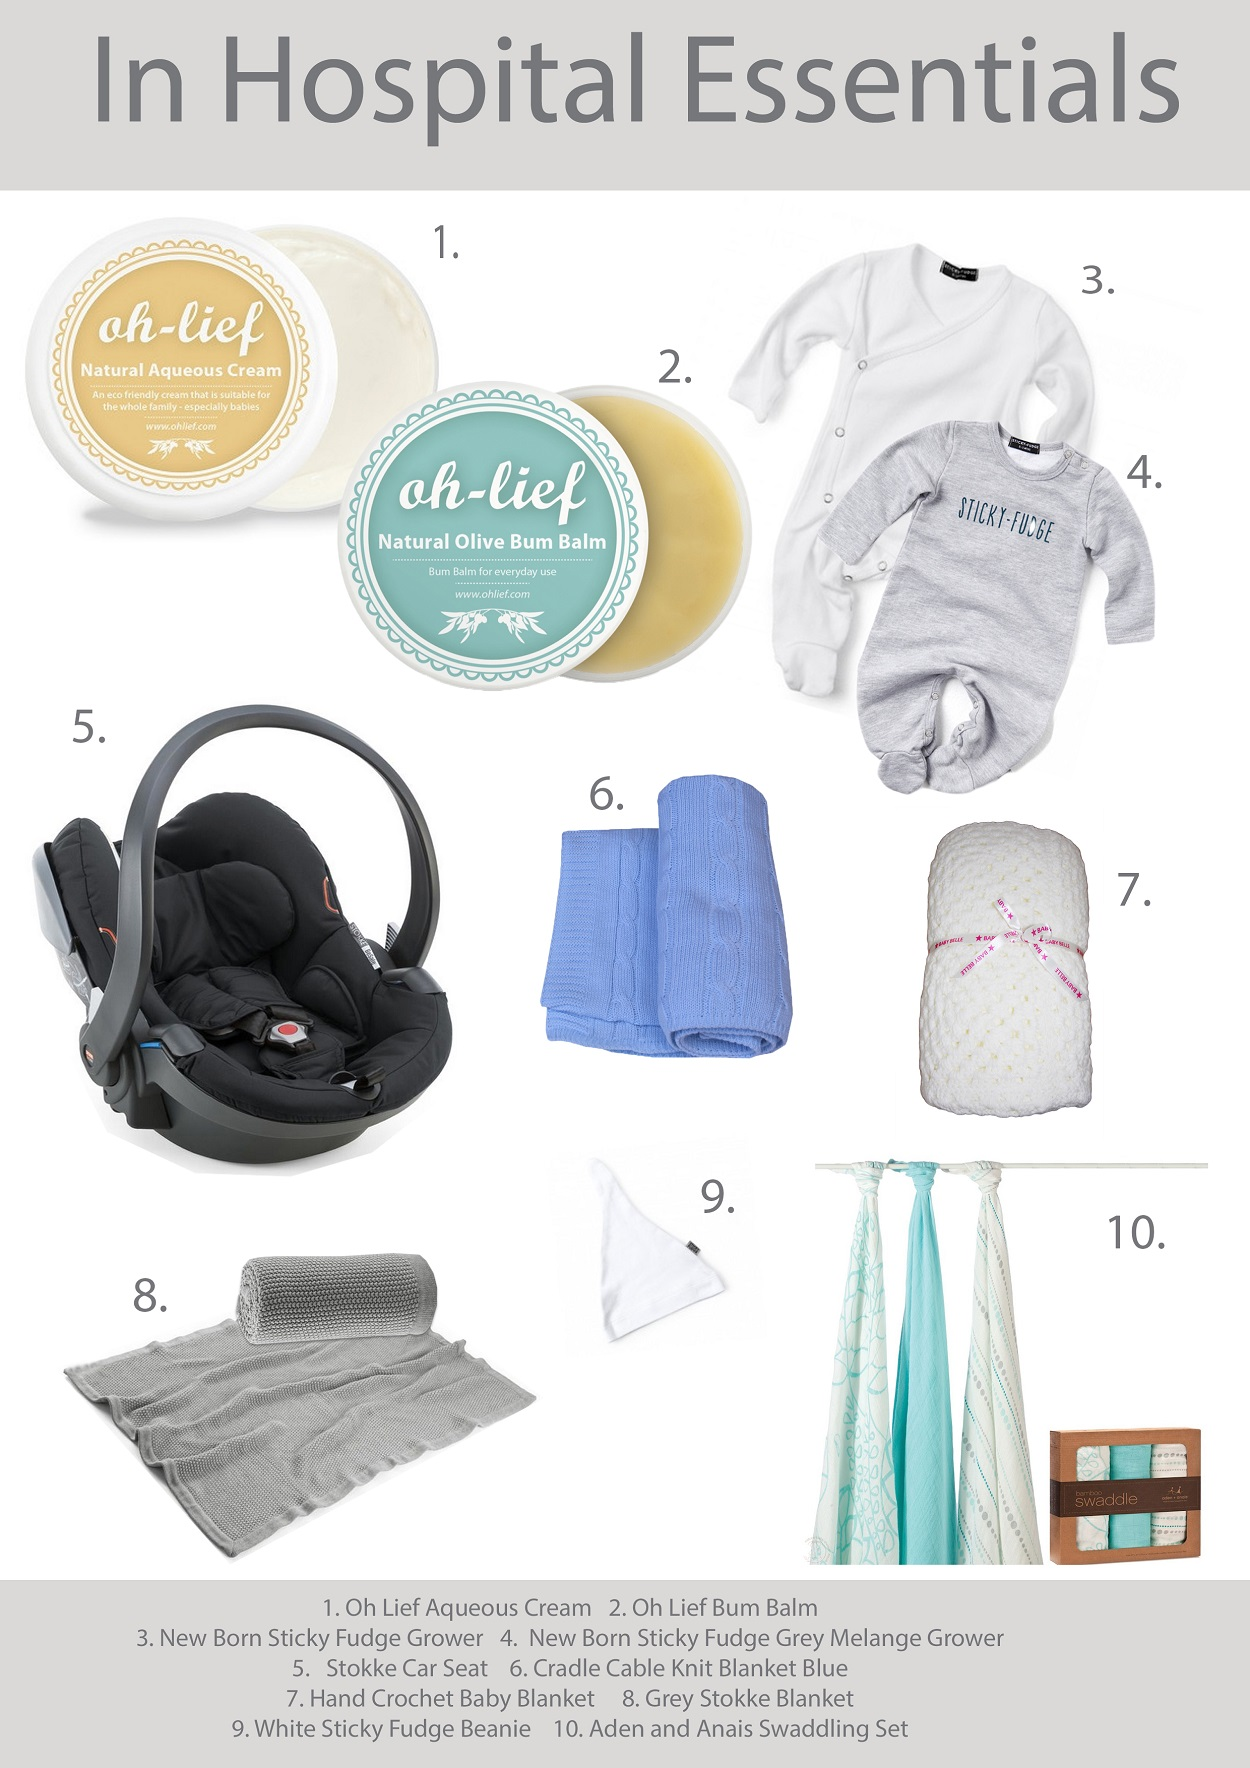 Hospital Essentials for babies